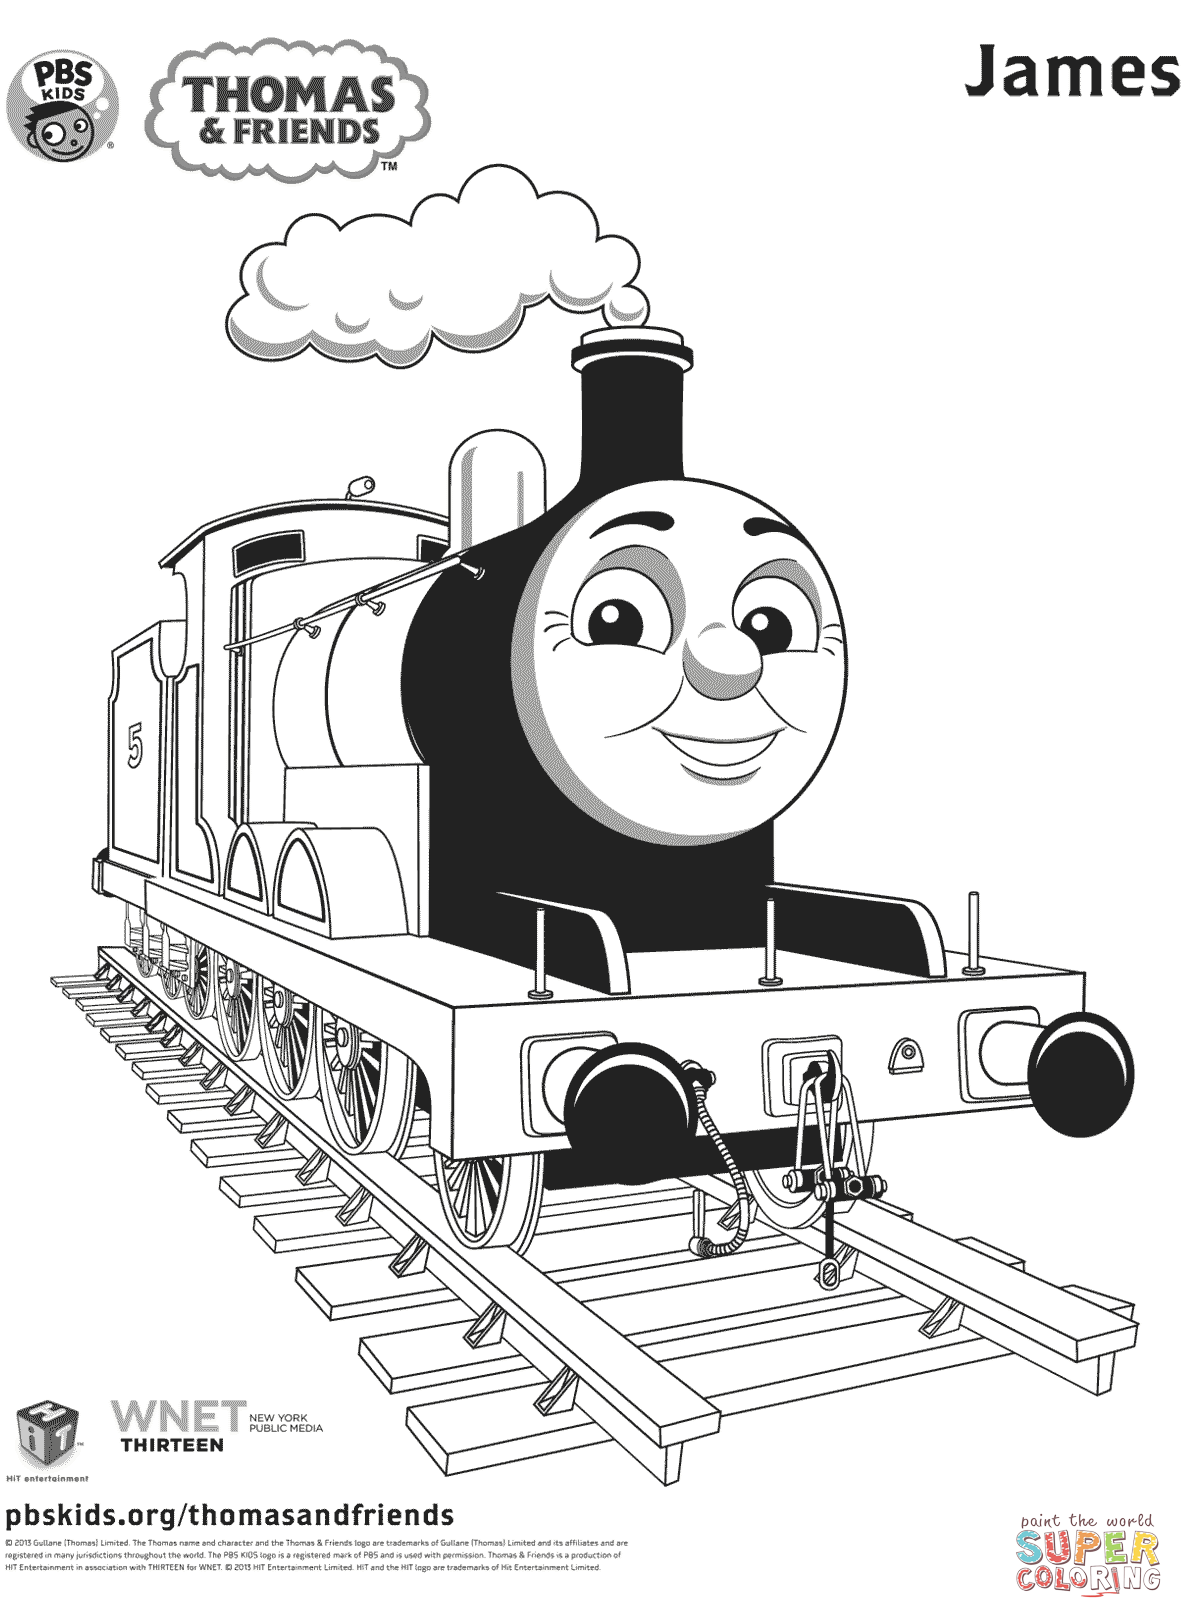 thomas and friends drawing pages james from thomas friends coloring page free printable and pages friends drawing thomas